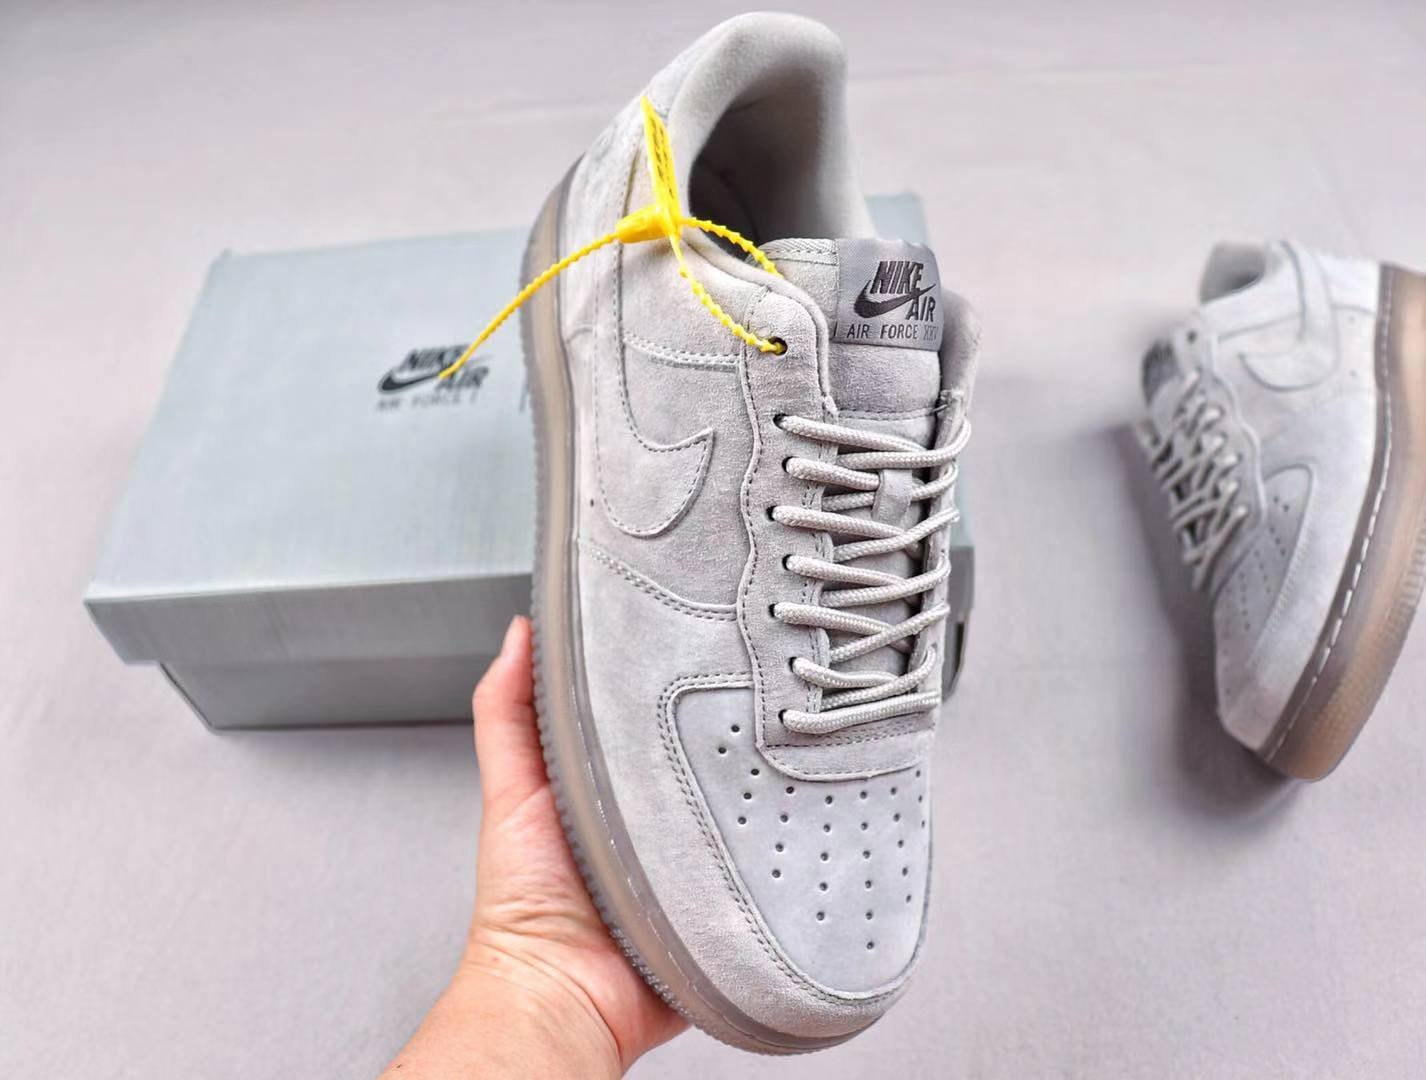 Discount Nike Air Force 1 Low x Reigning Champ AA1117 119 Grey Suede